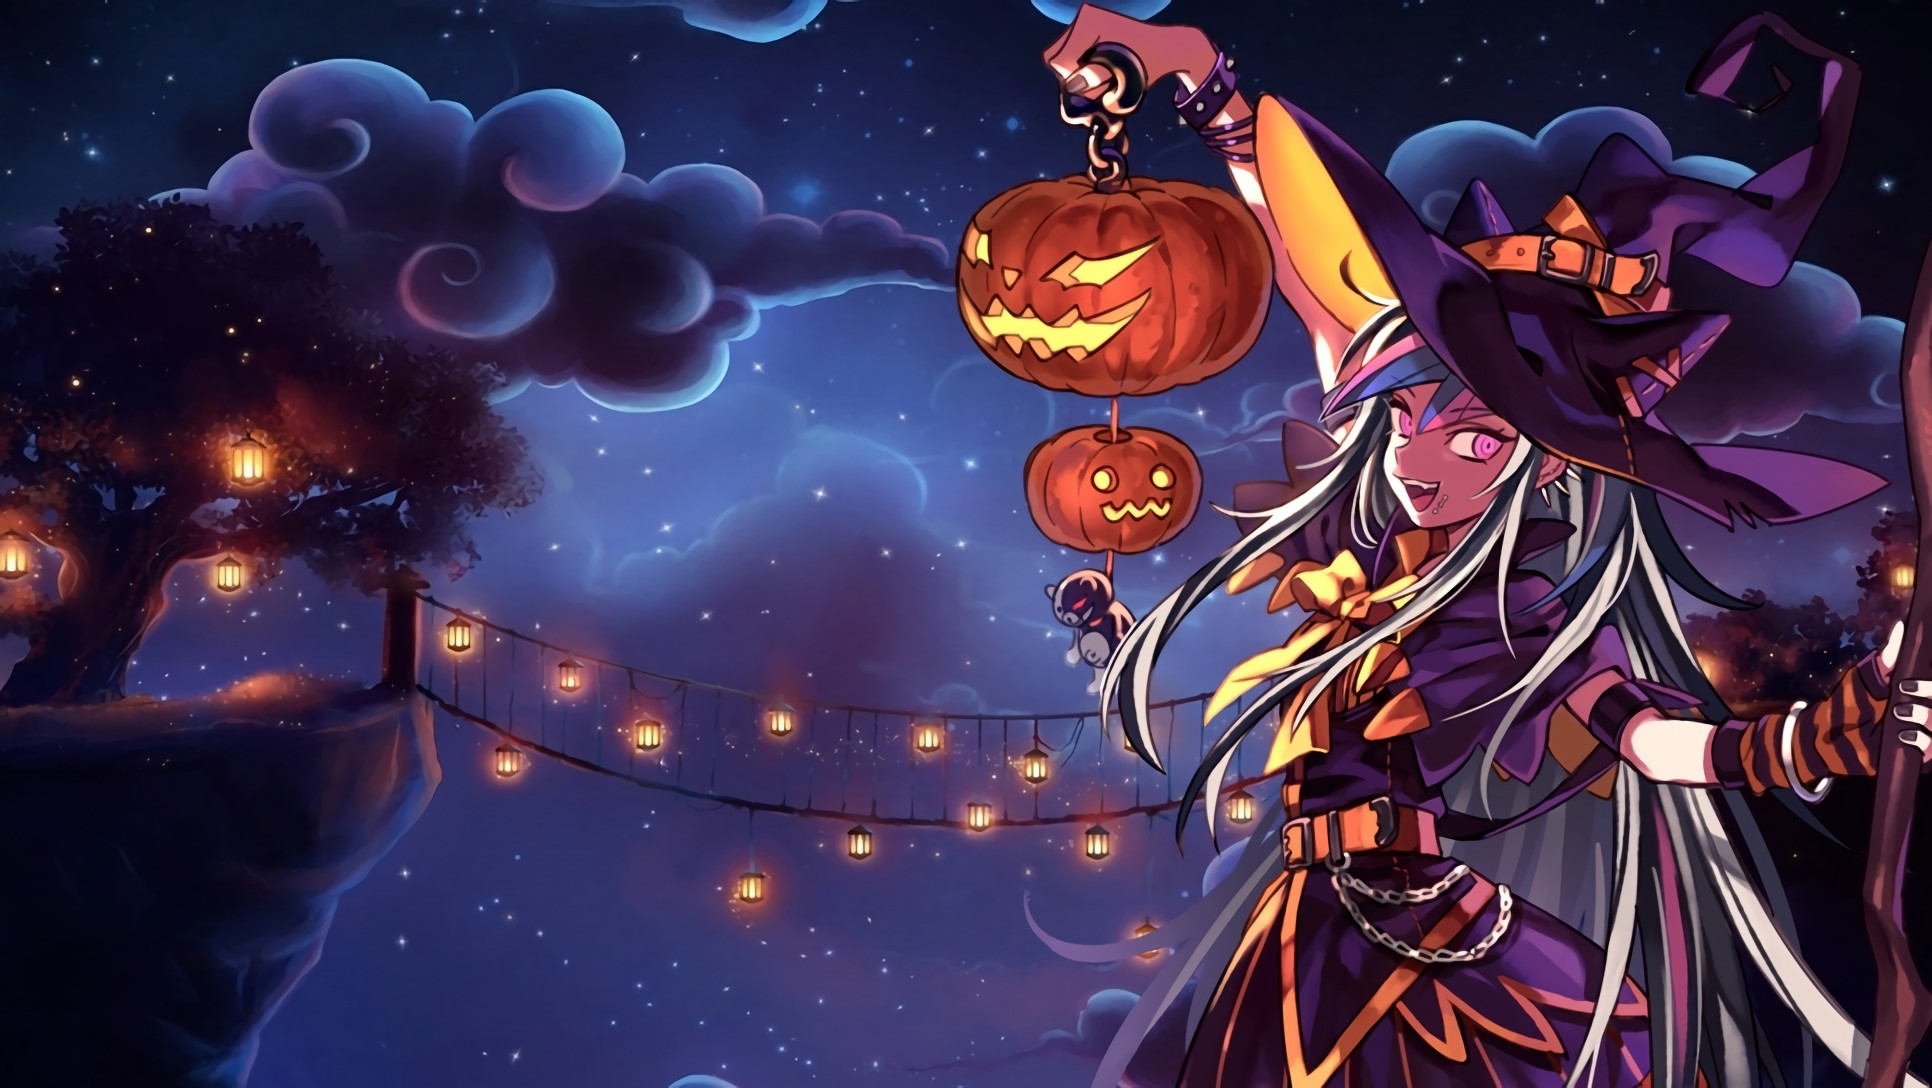 Anime Halloween Wallpaper 1